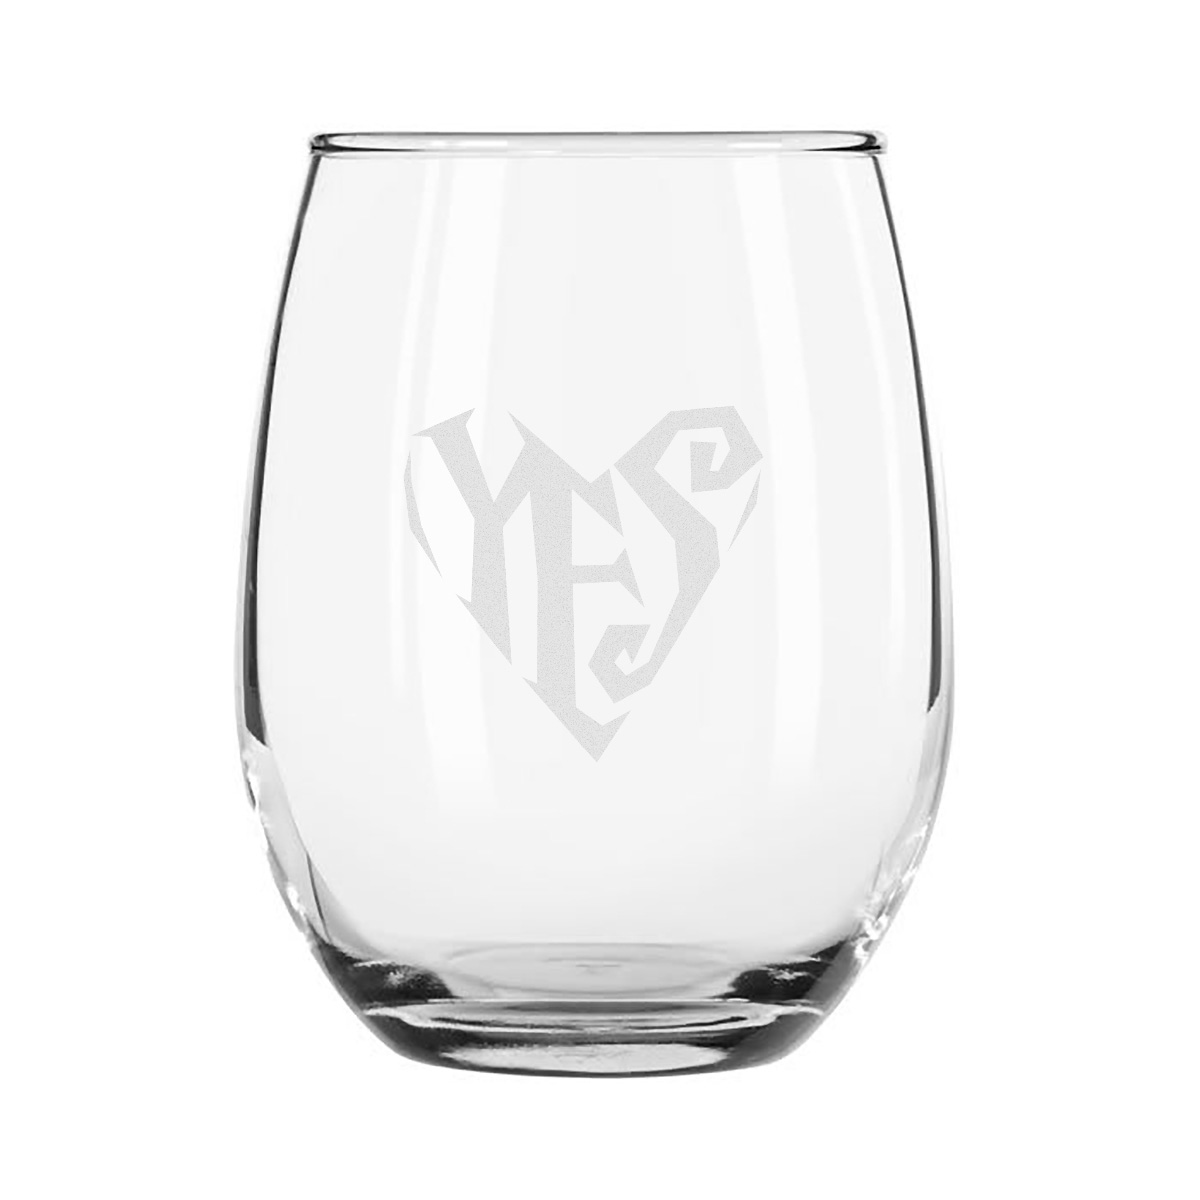 Etched Stemless Wine Glass 4-Piece Set